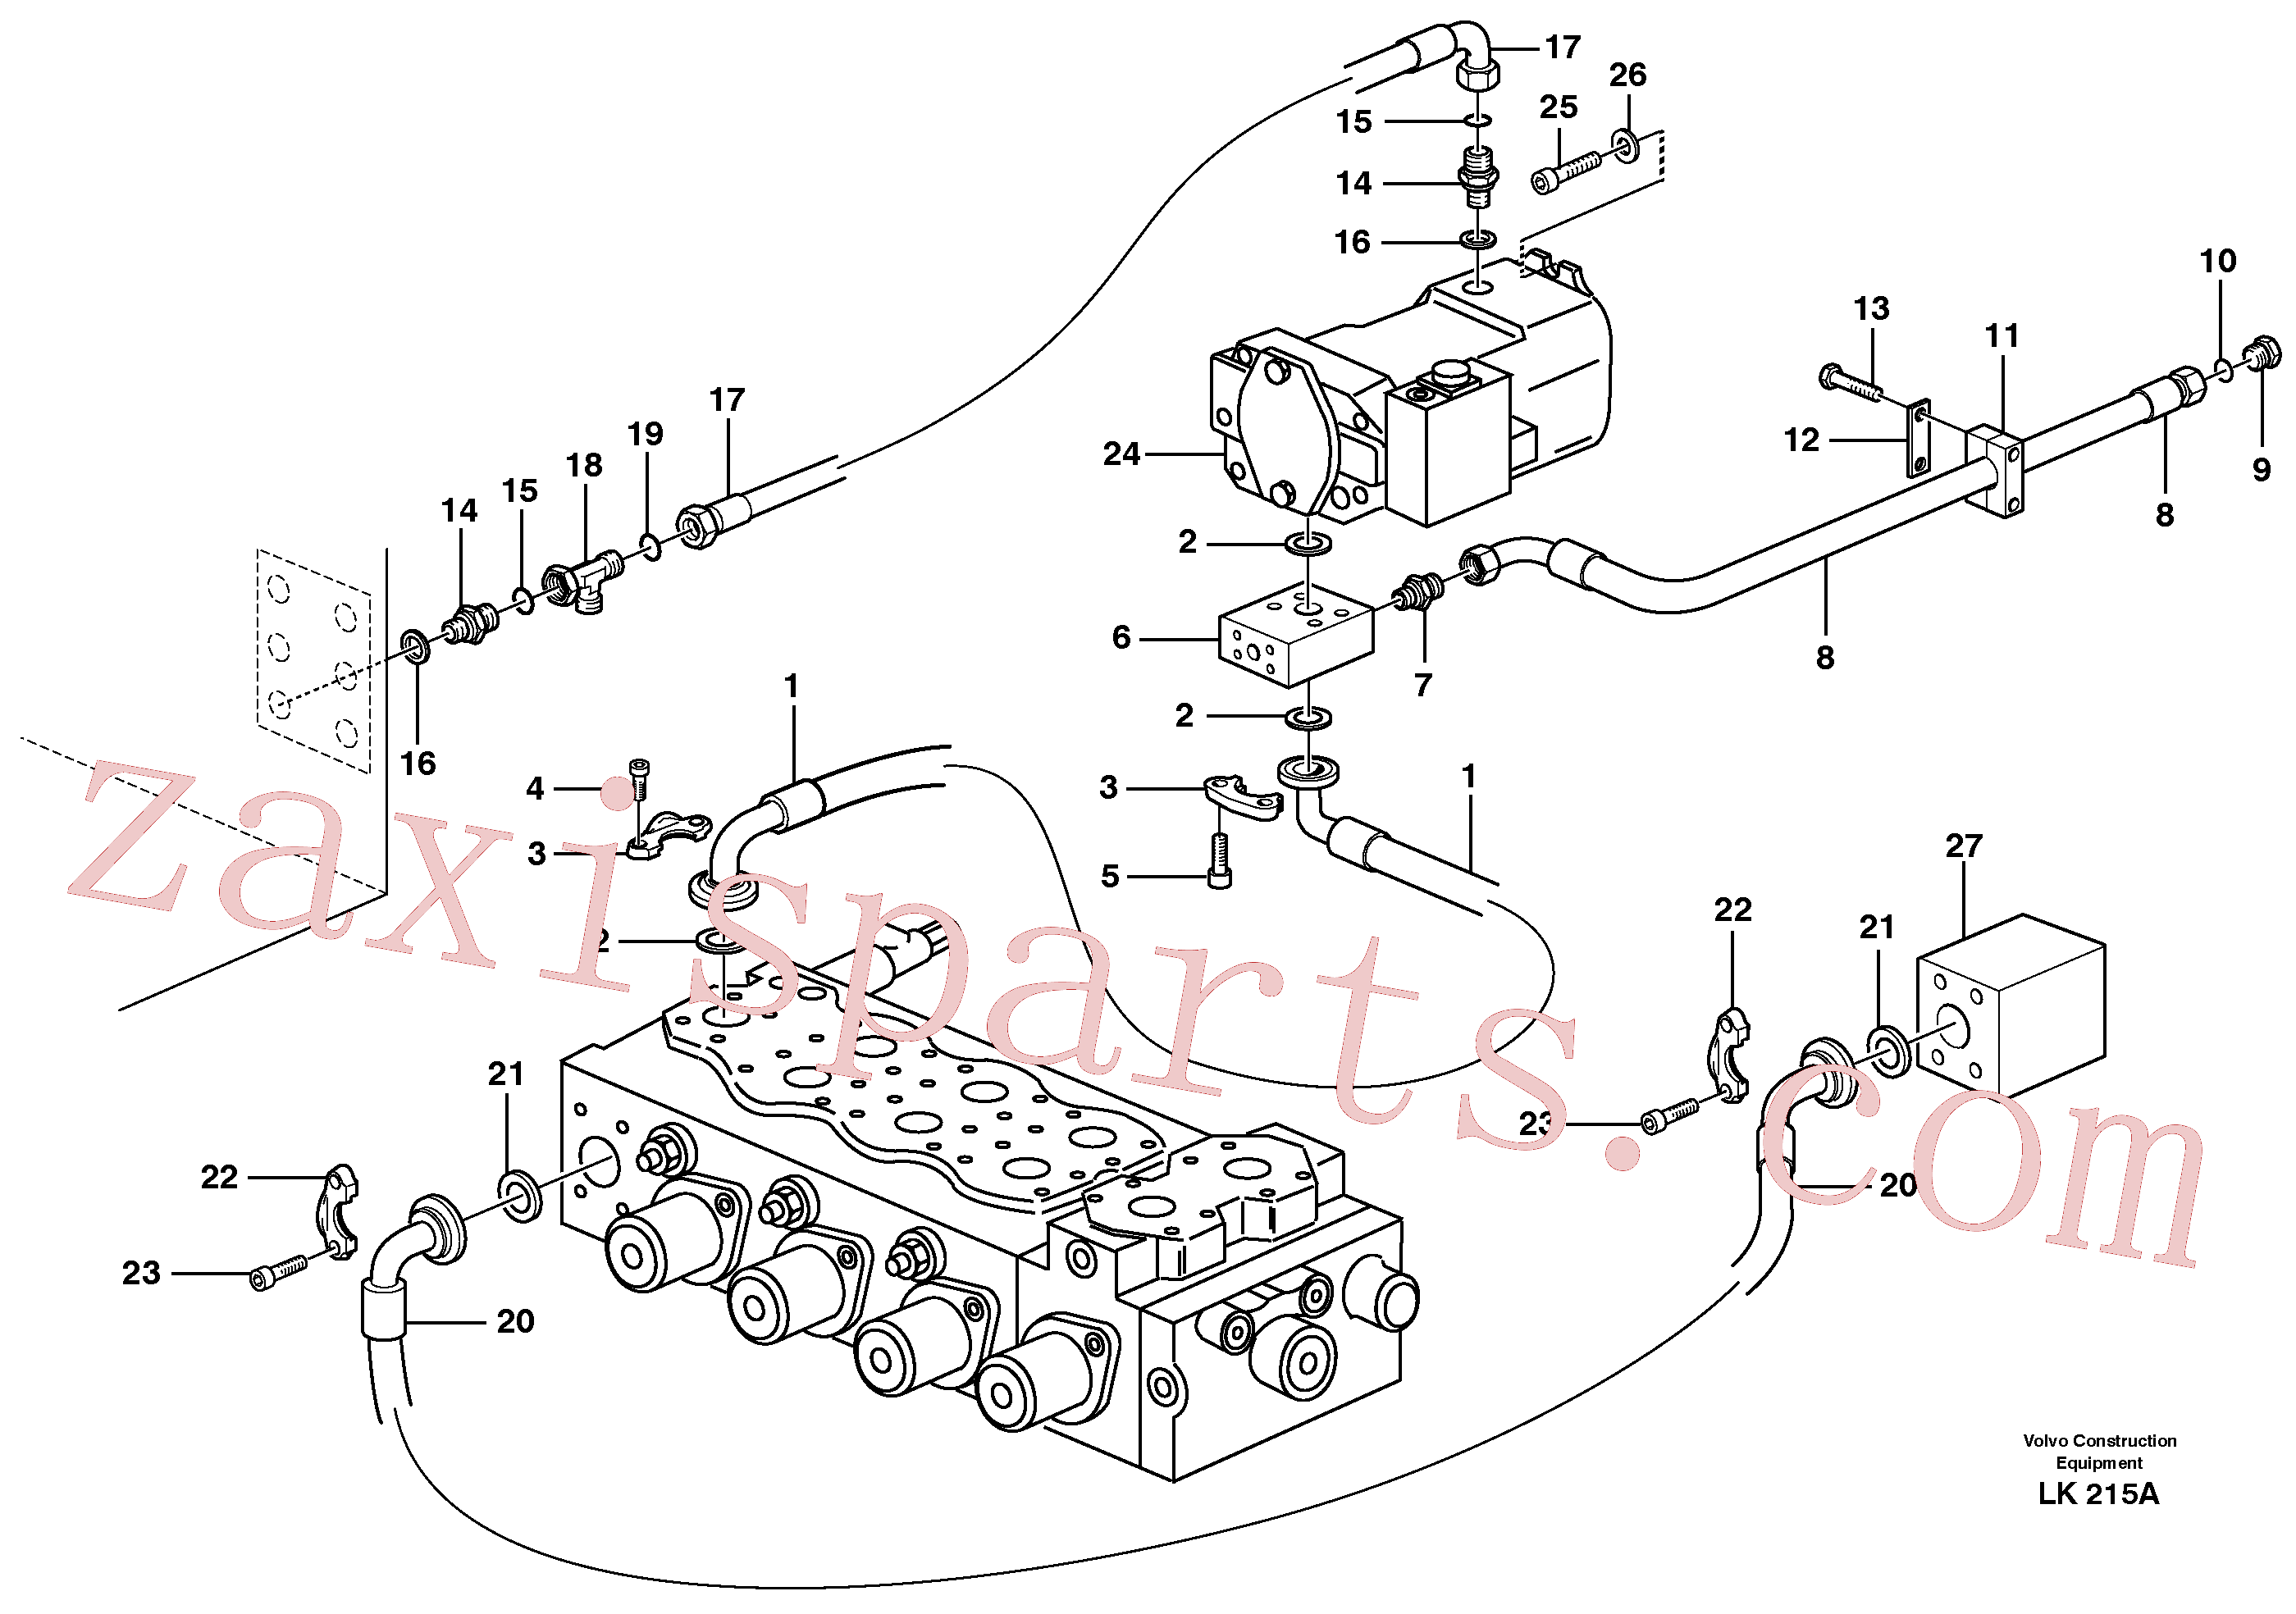 VOE14378764 for Volvo Hydraulic system, feed line(LK215A assembly)